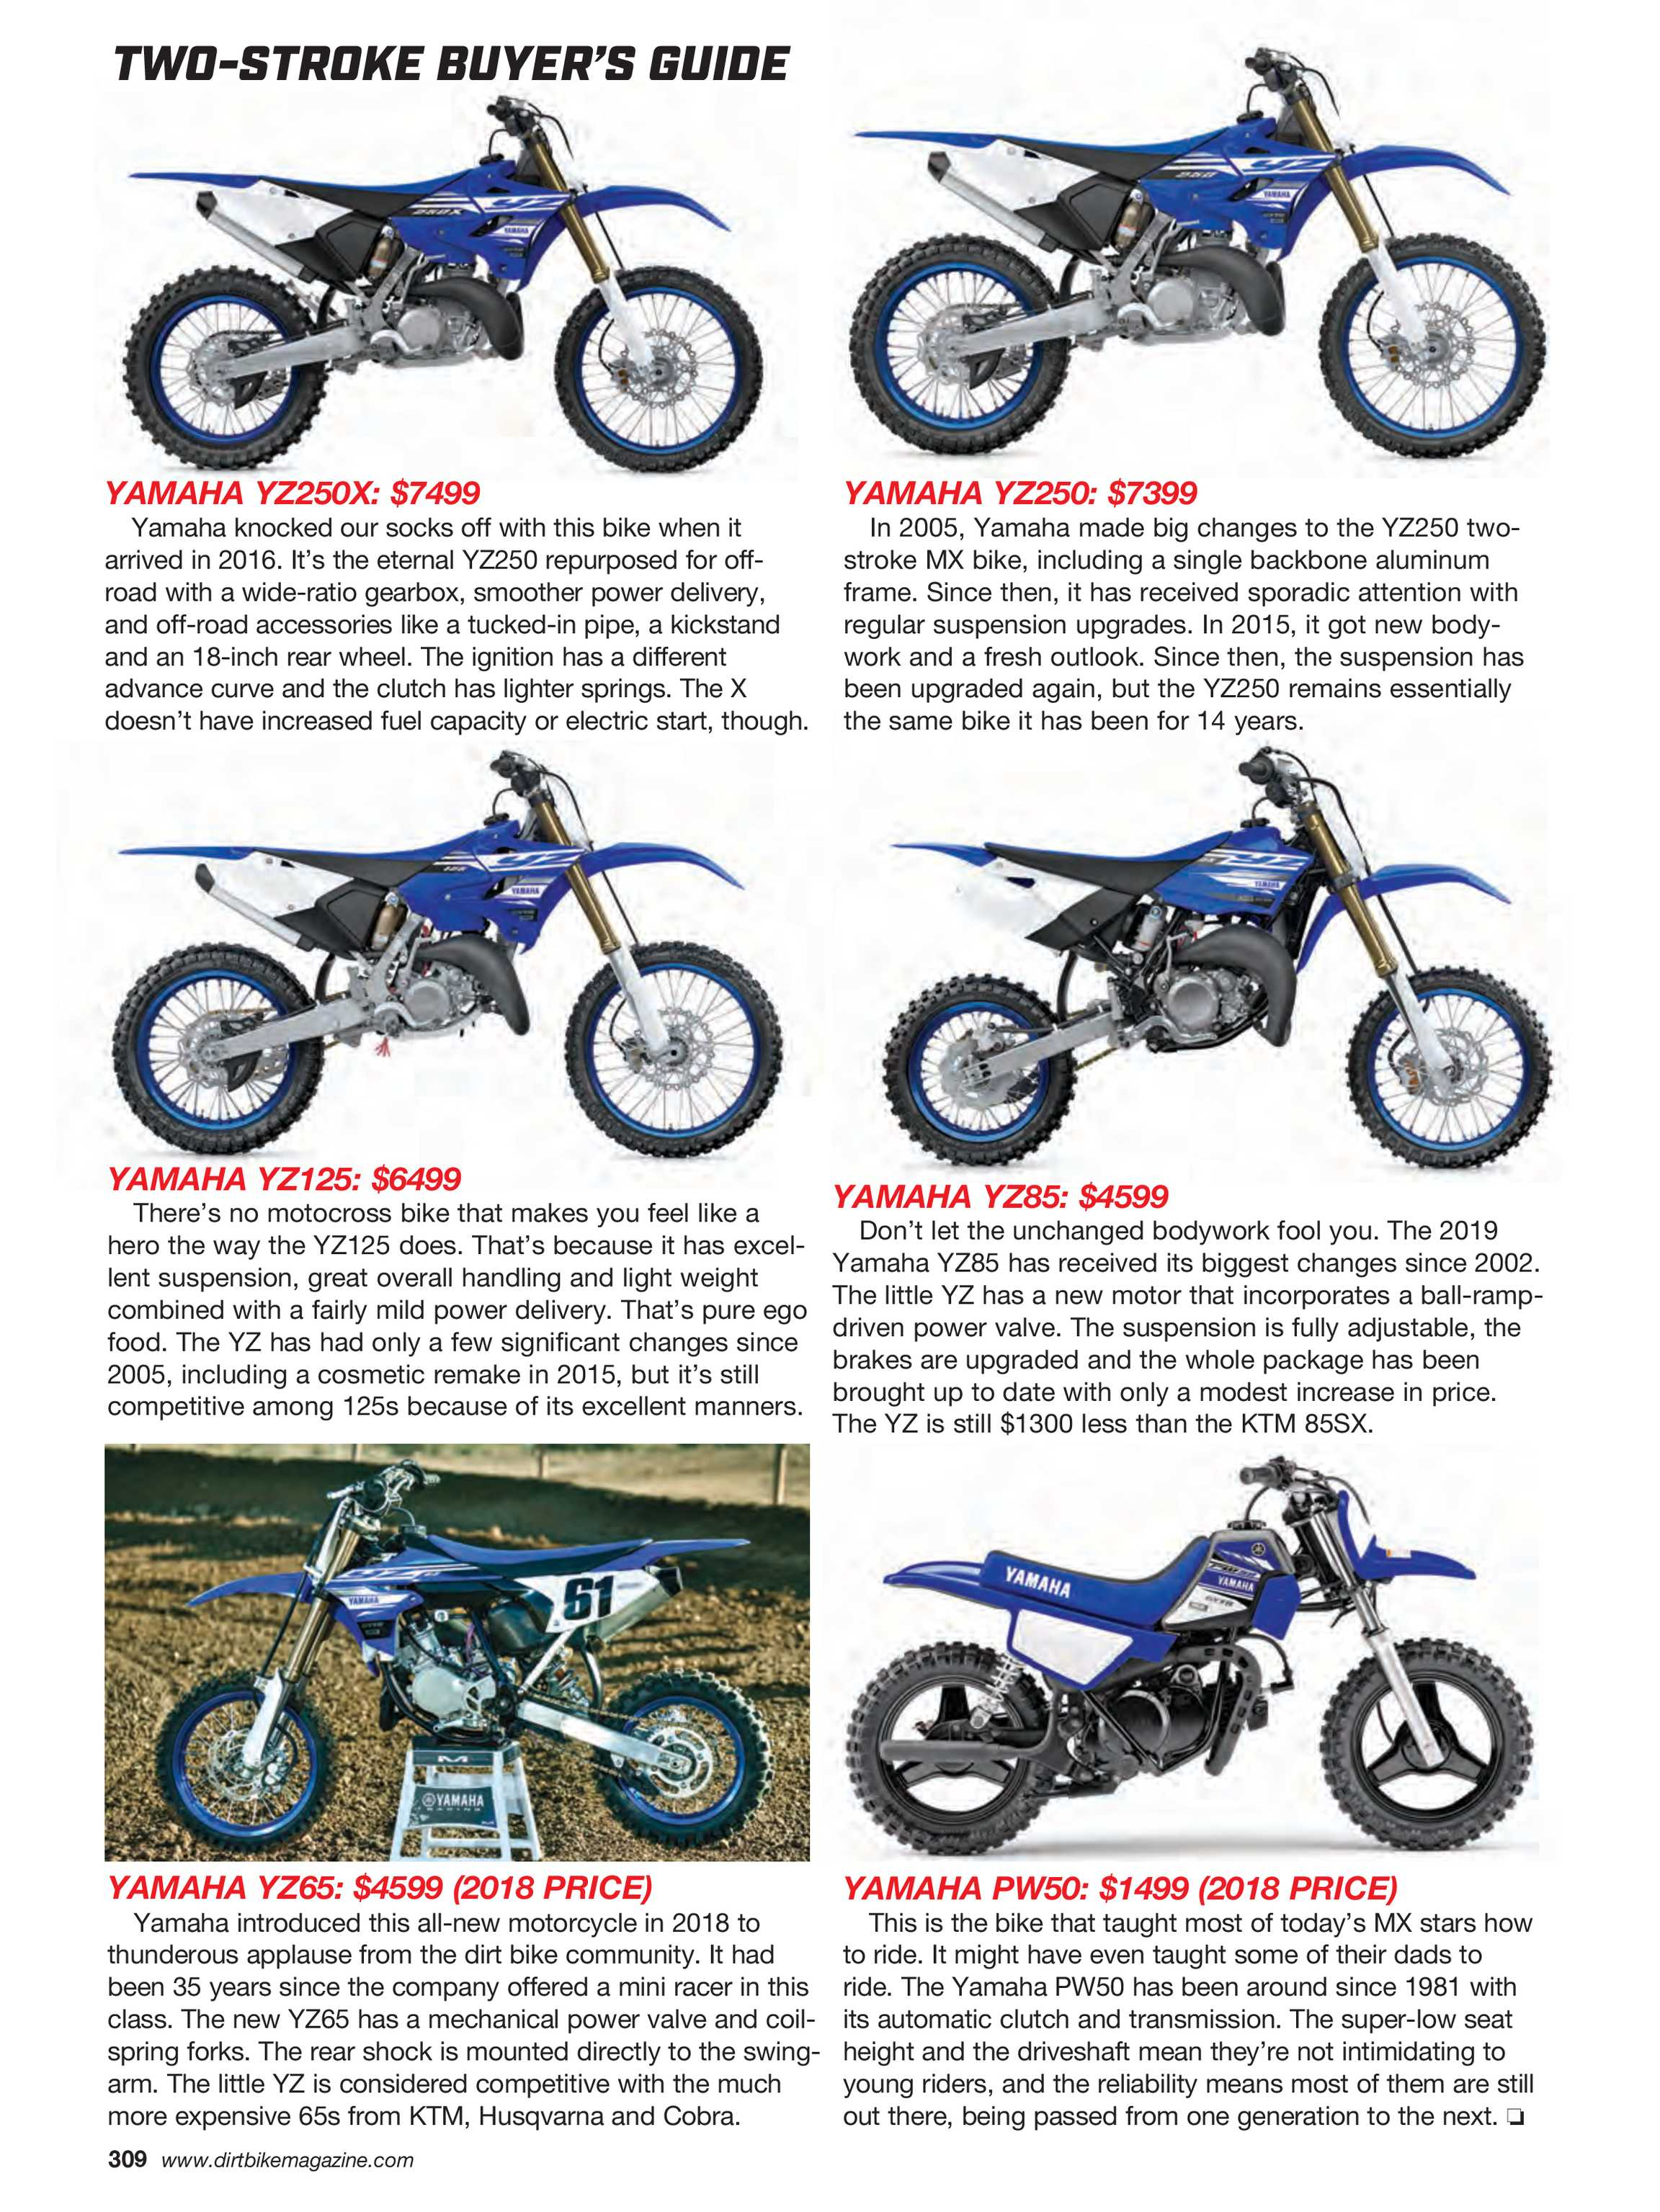 Marvelous Dirt Bike Magazine 2 Strokes New And Old Page Cover Dailytribune Chair Design For Home Dailytribuneorg